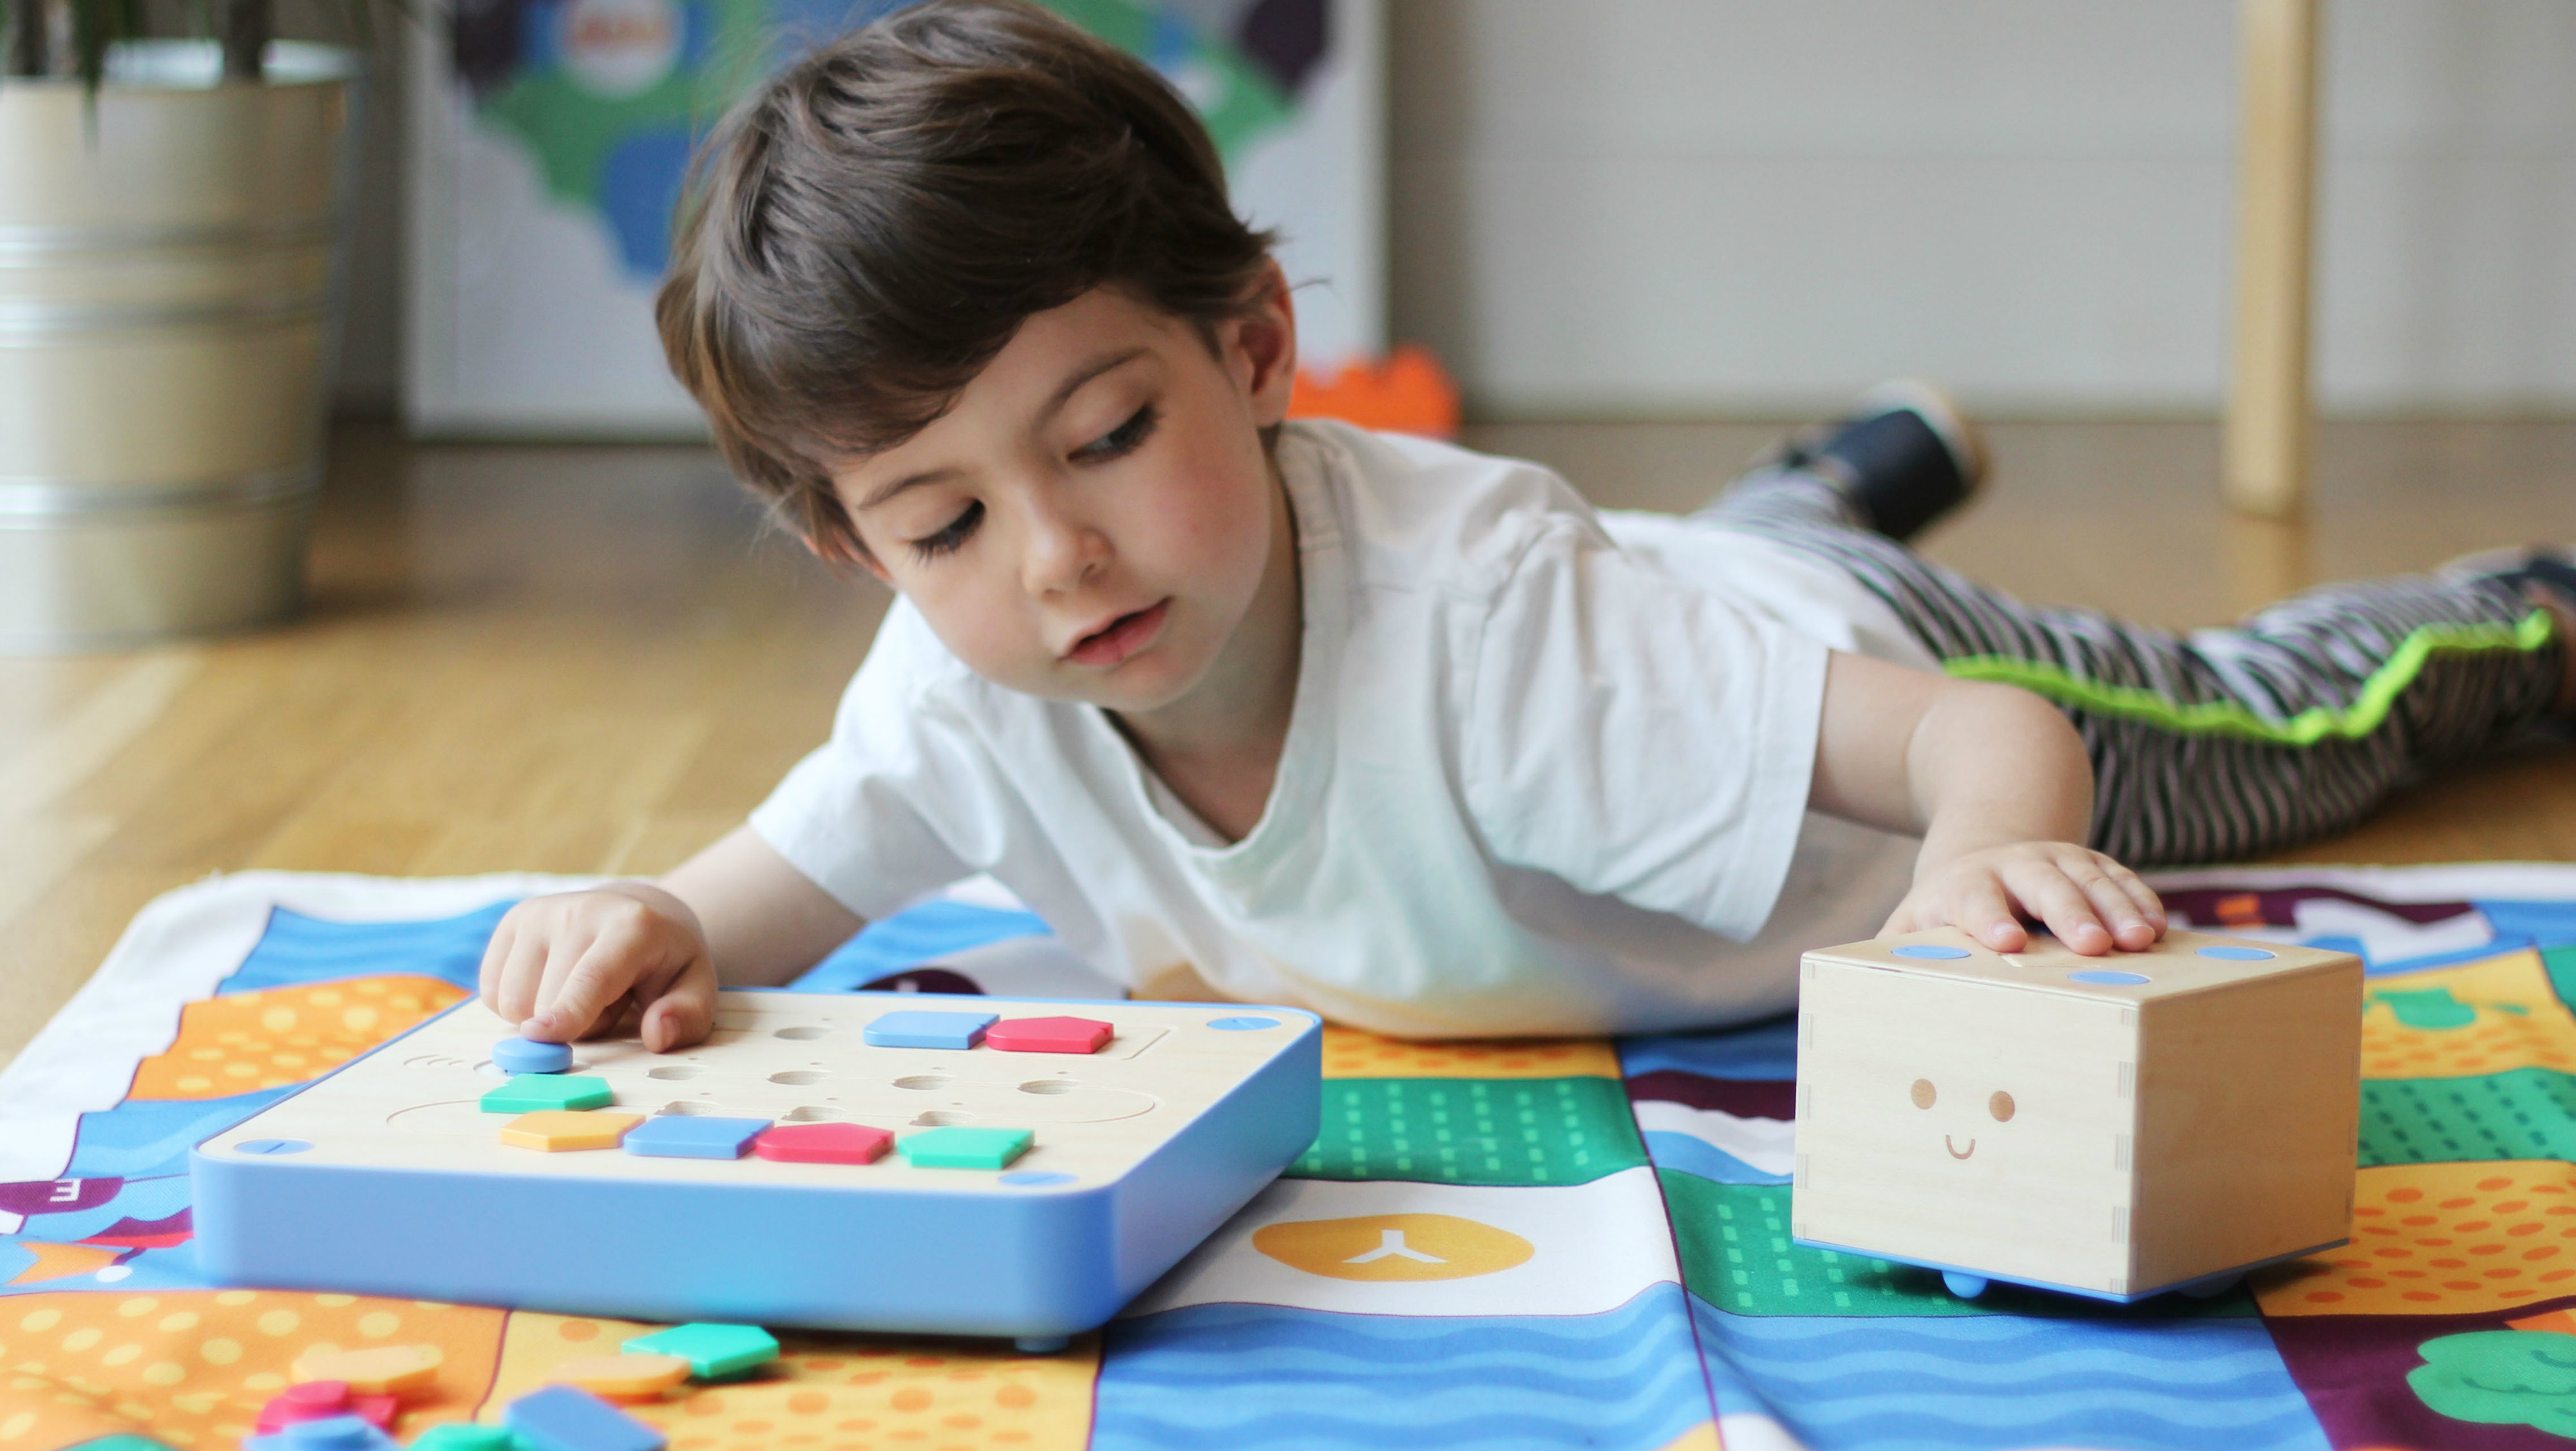 This Montessori Inspired Wooden Robot Teaches Toddlers How